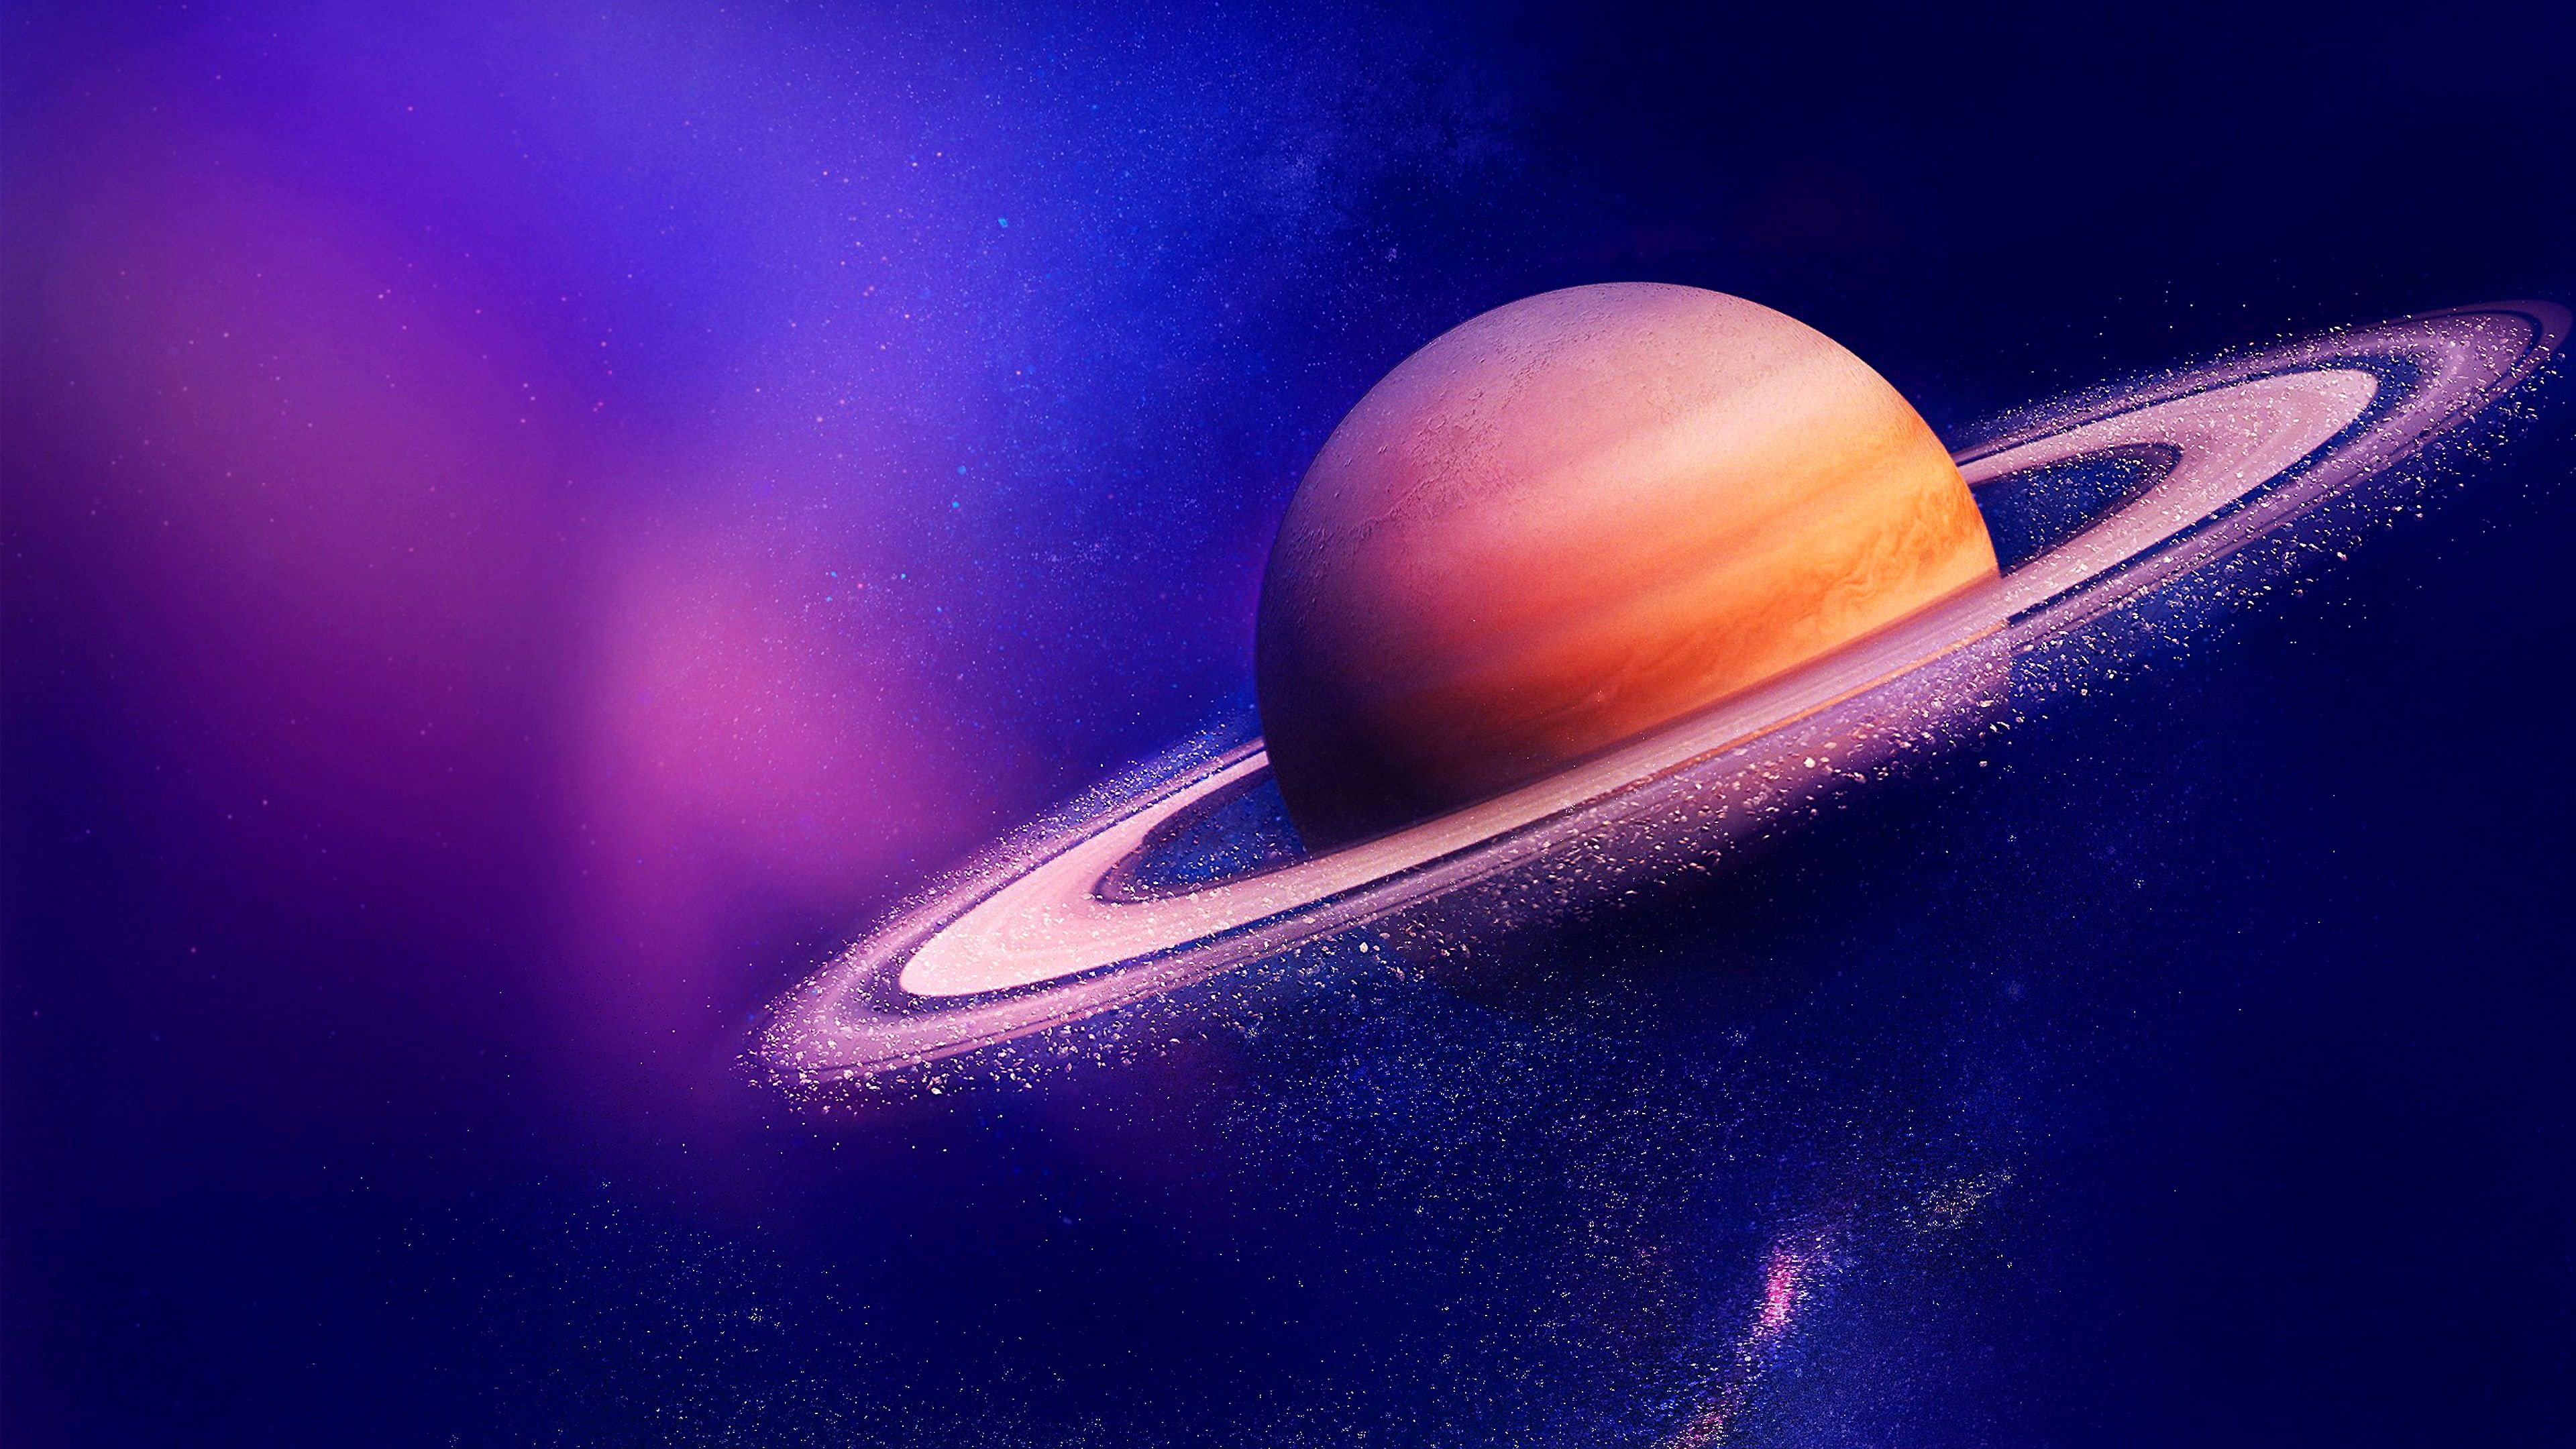 saturn #planet ringed planet planetary ring space art #space #dust ...